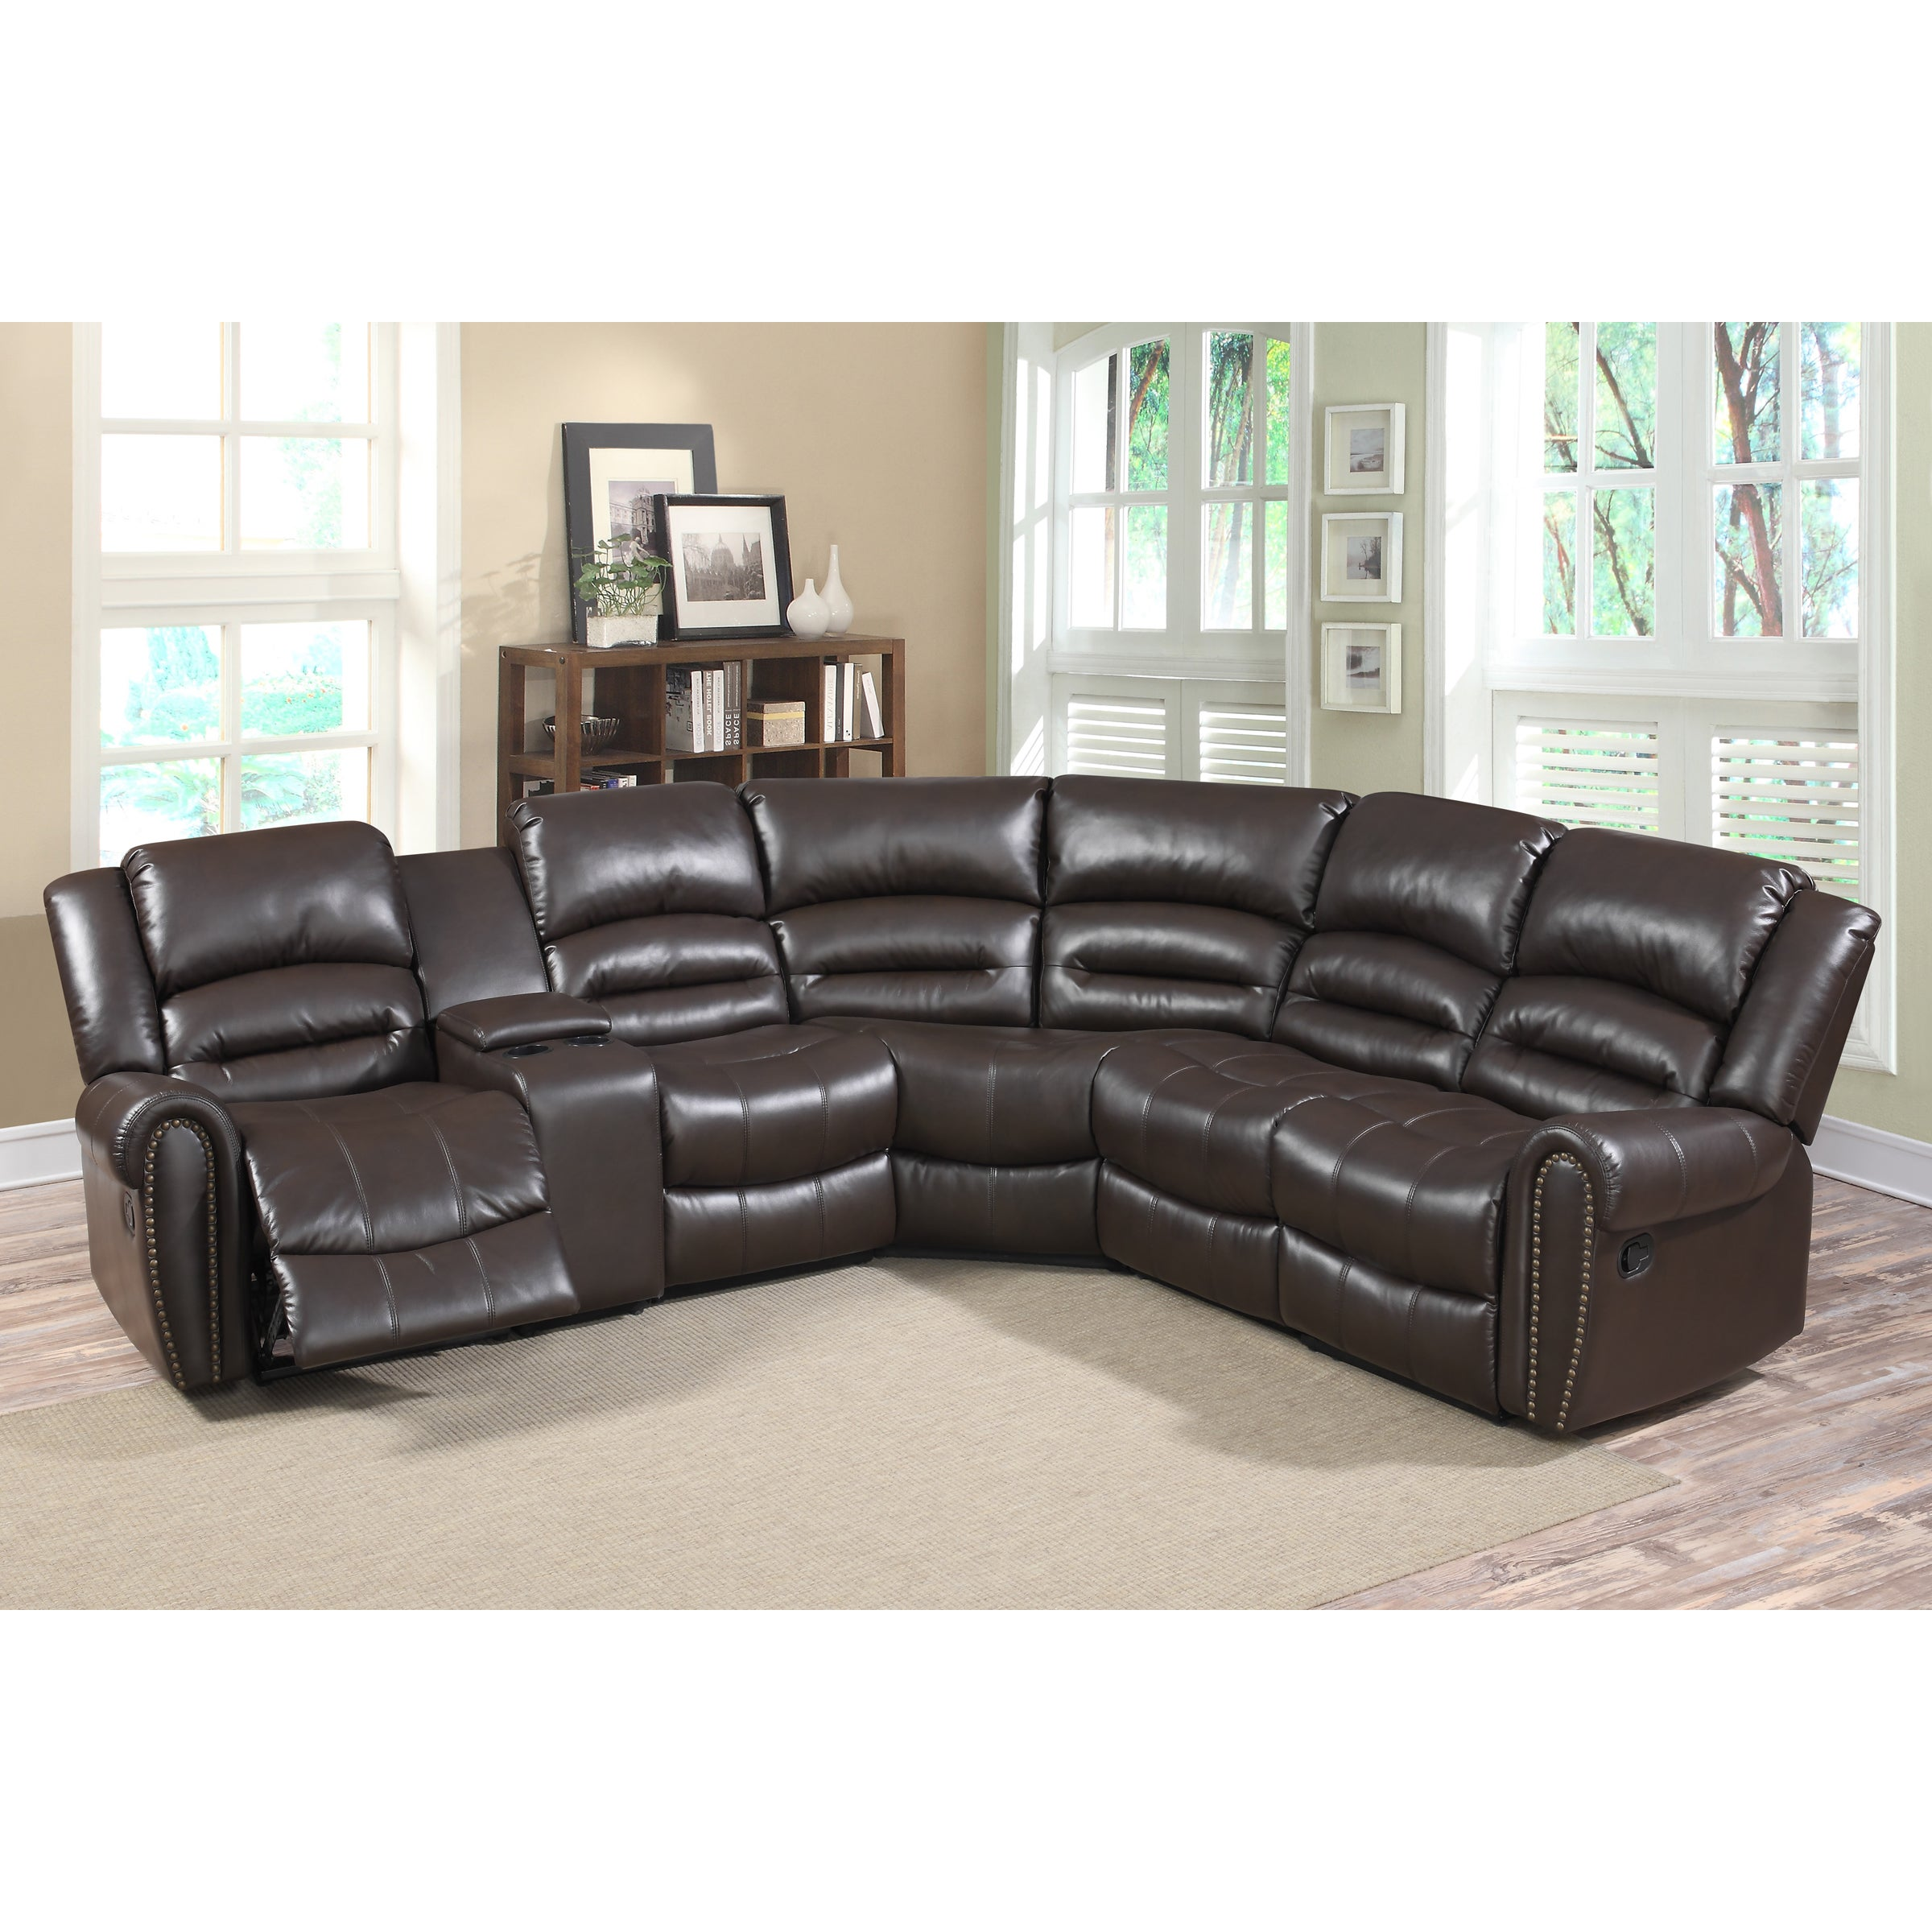 Connie Brown Faux-leather 6-piece Reclining Sectional Liv...